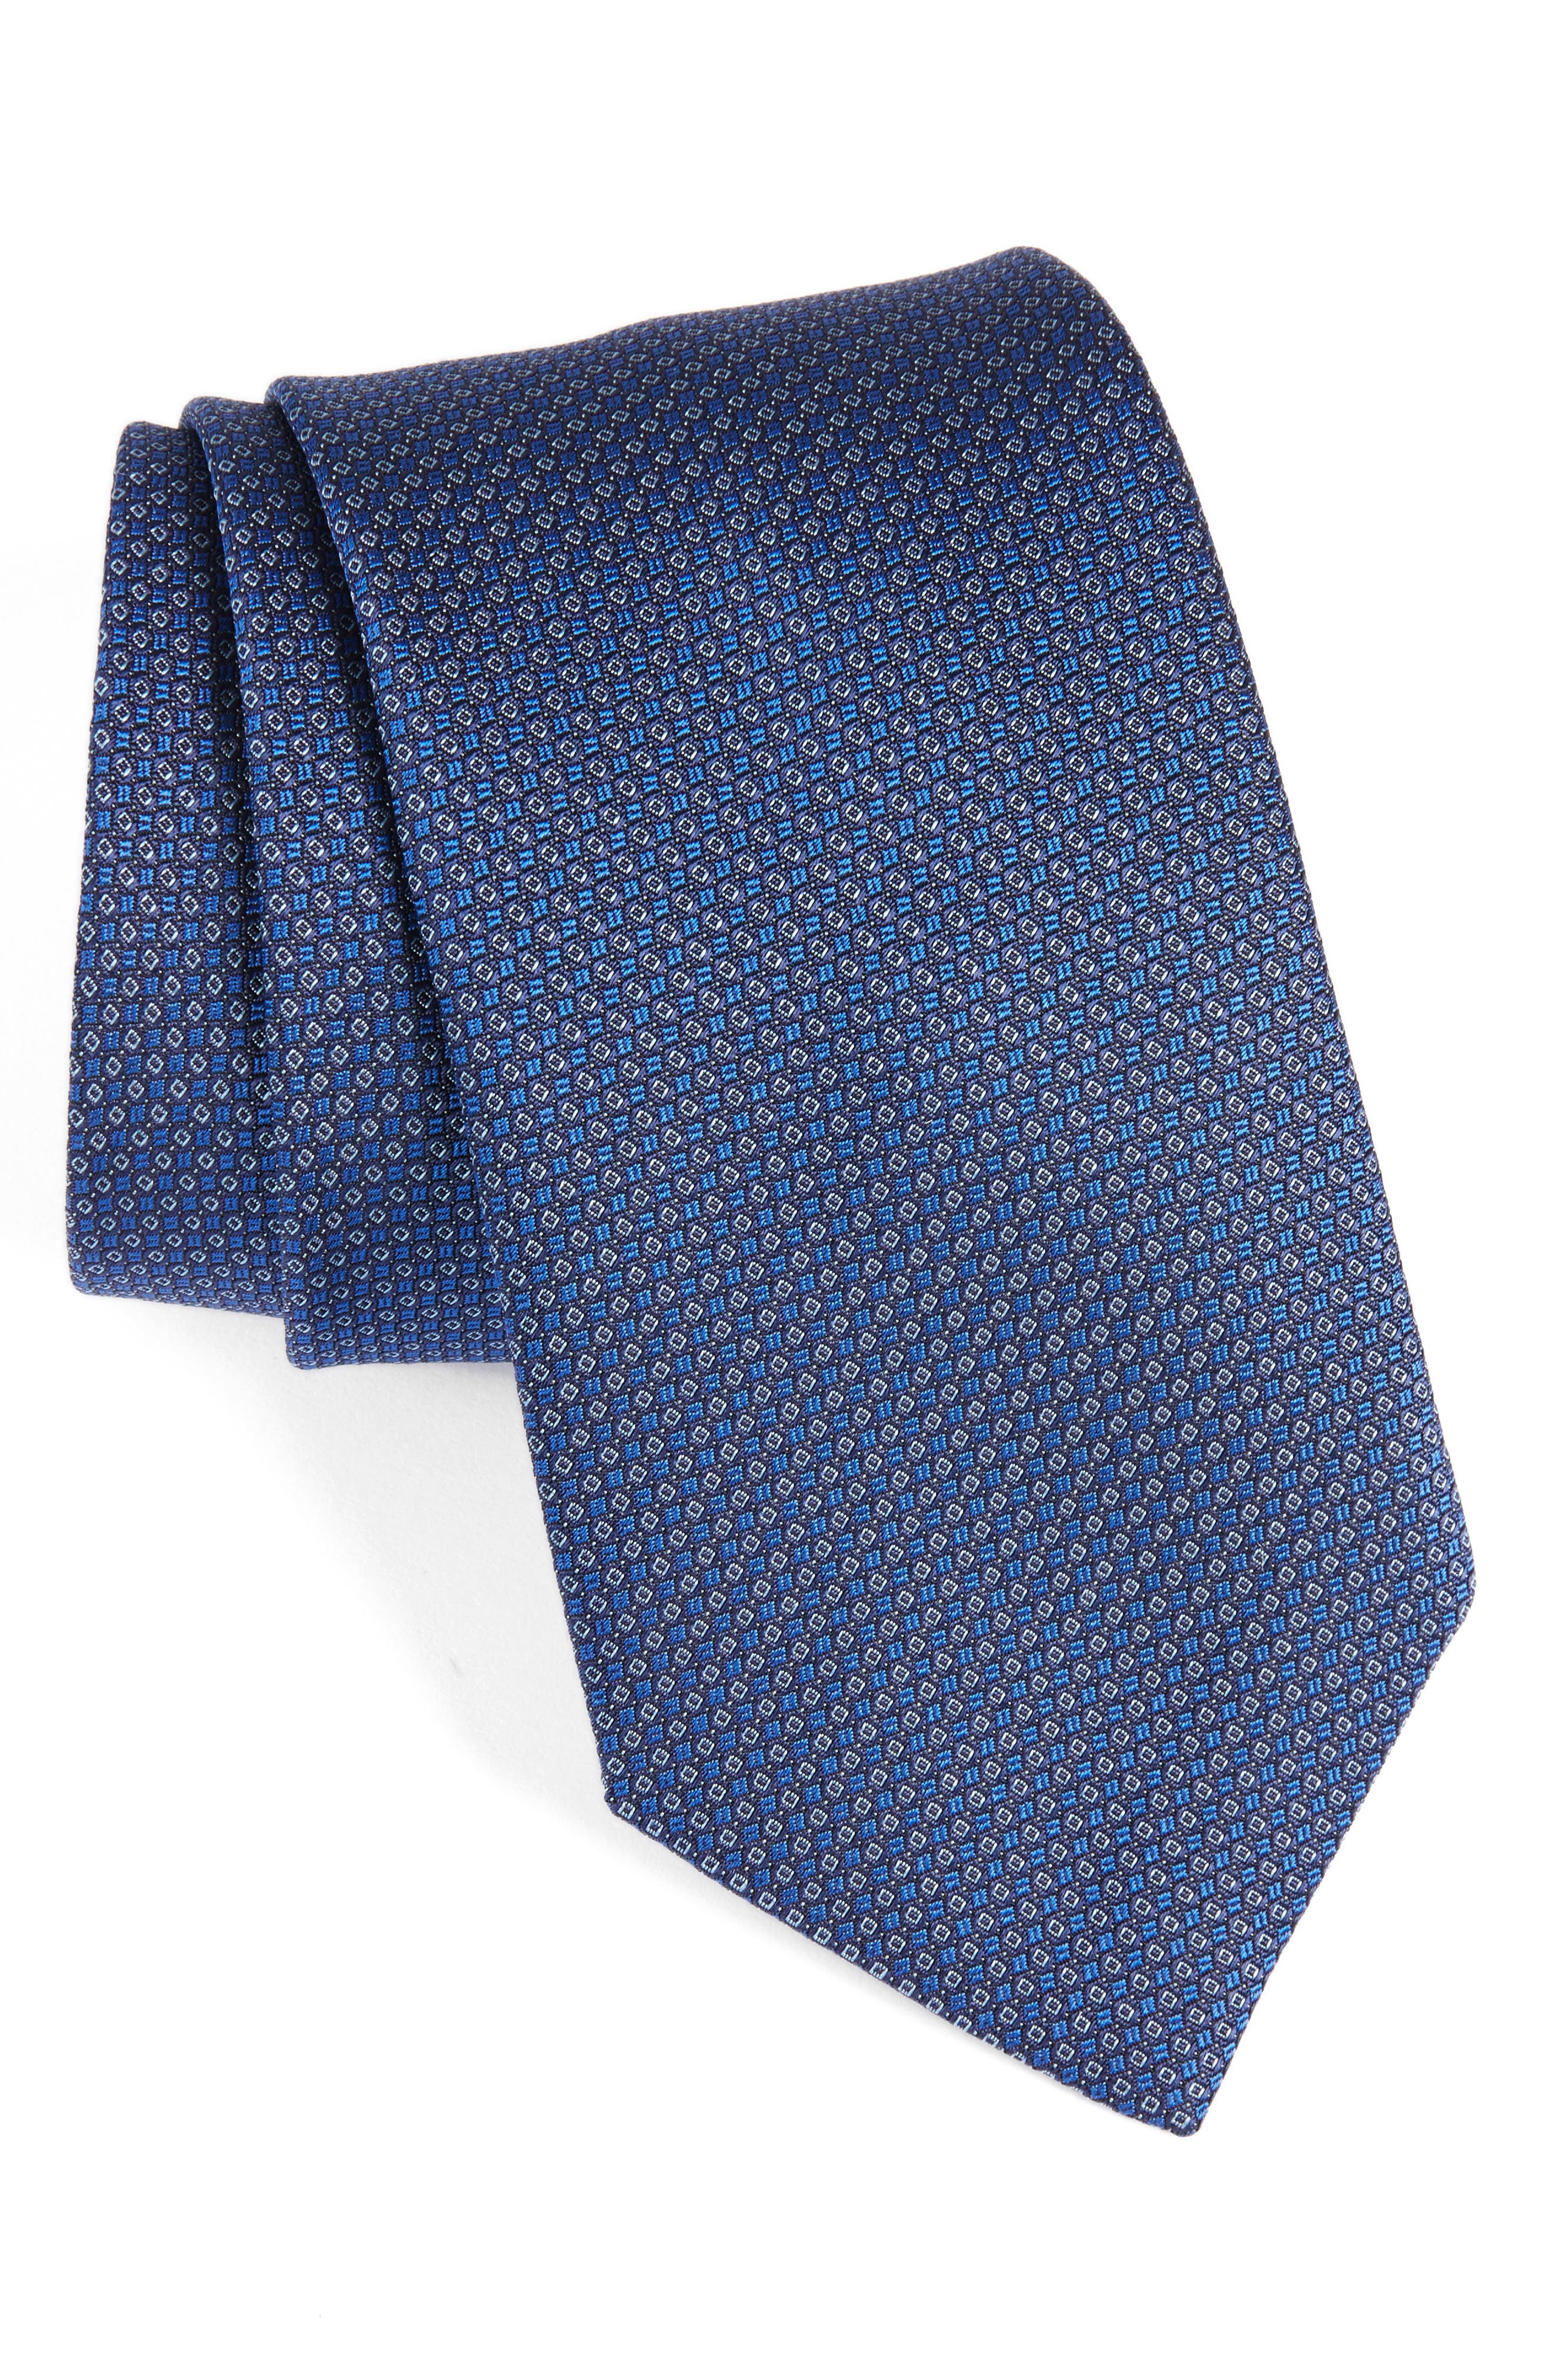 Alternate Image 1 Selected - David Donahue Solid Silk Tie